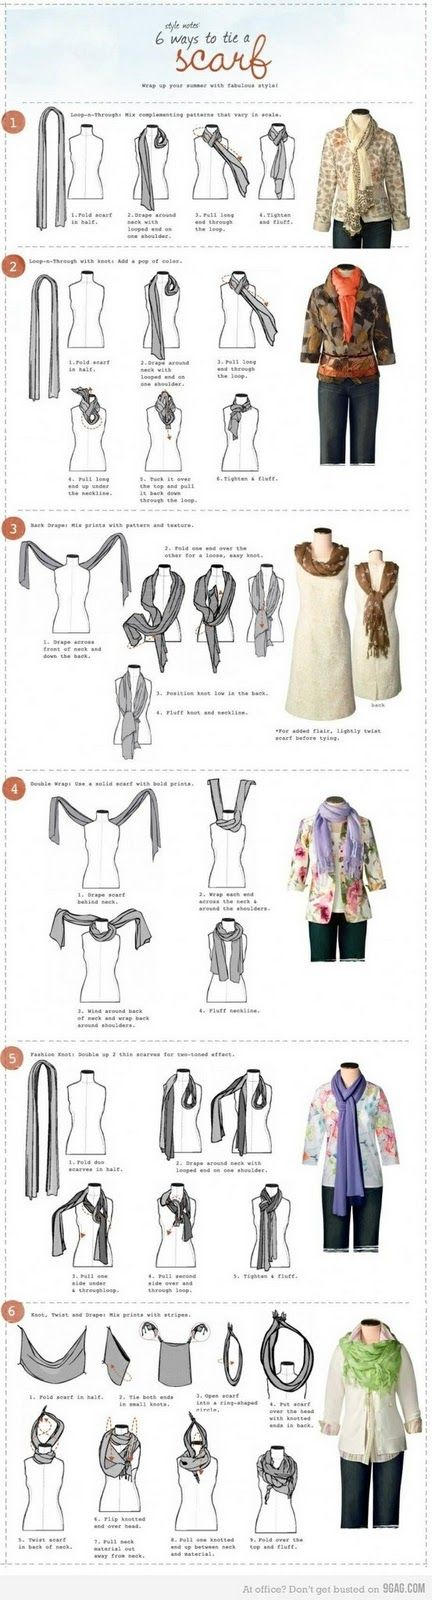 A lightweight scarf is an essential during the spring season. Thanks to our follower @Missy Whittington we now know all the tricks to styling one! #PinoftheWeek 4/27